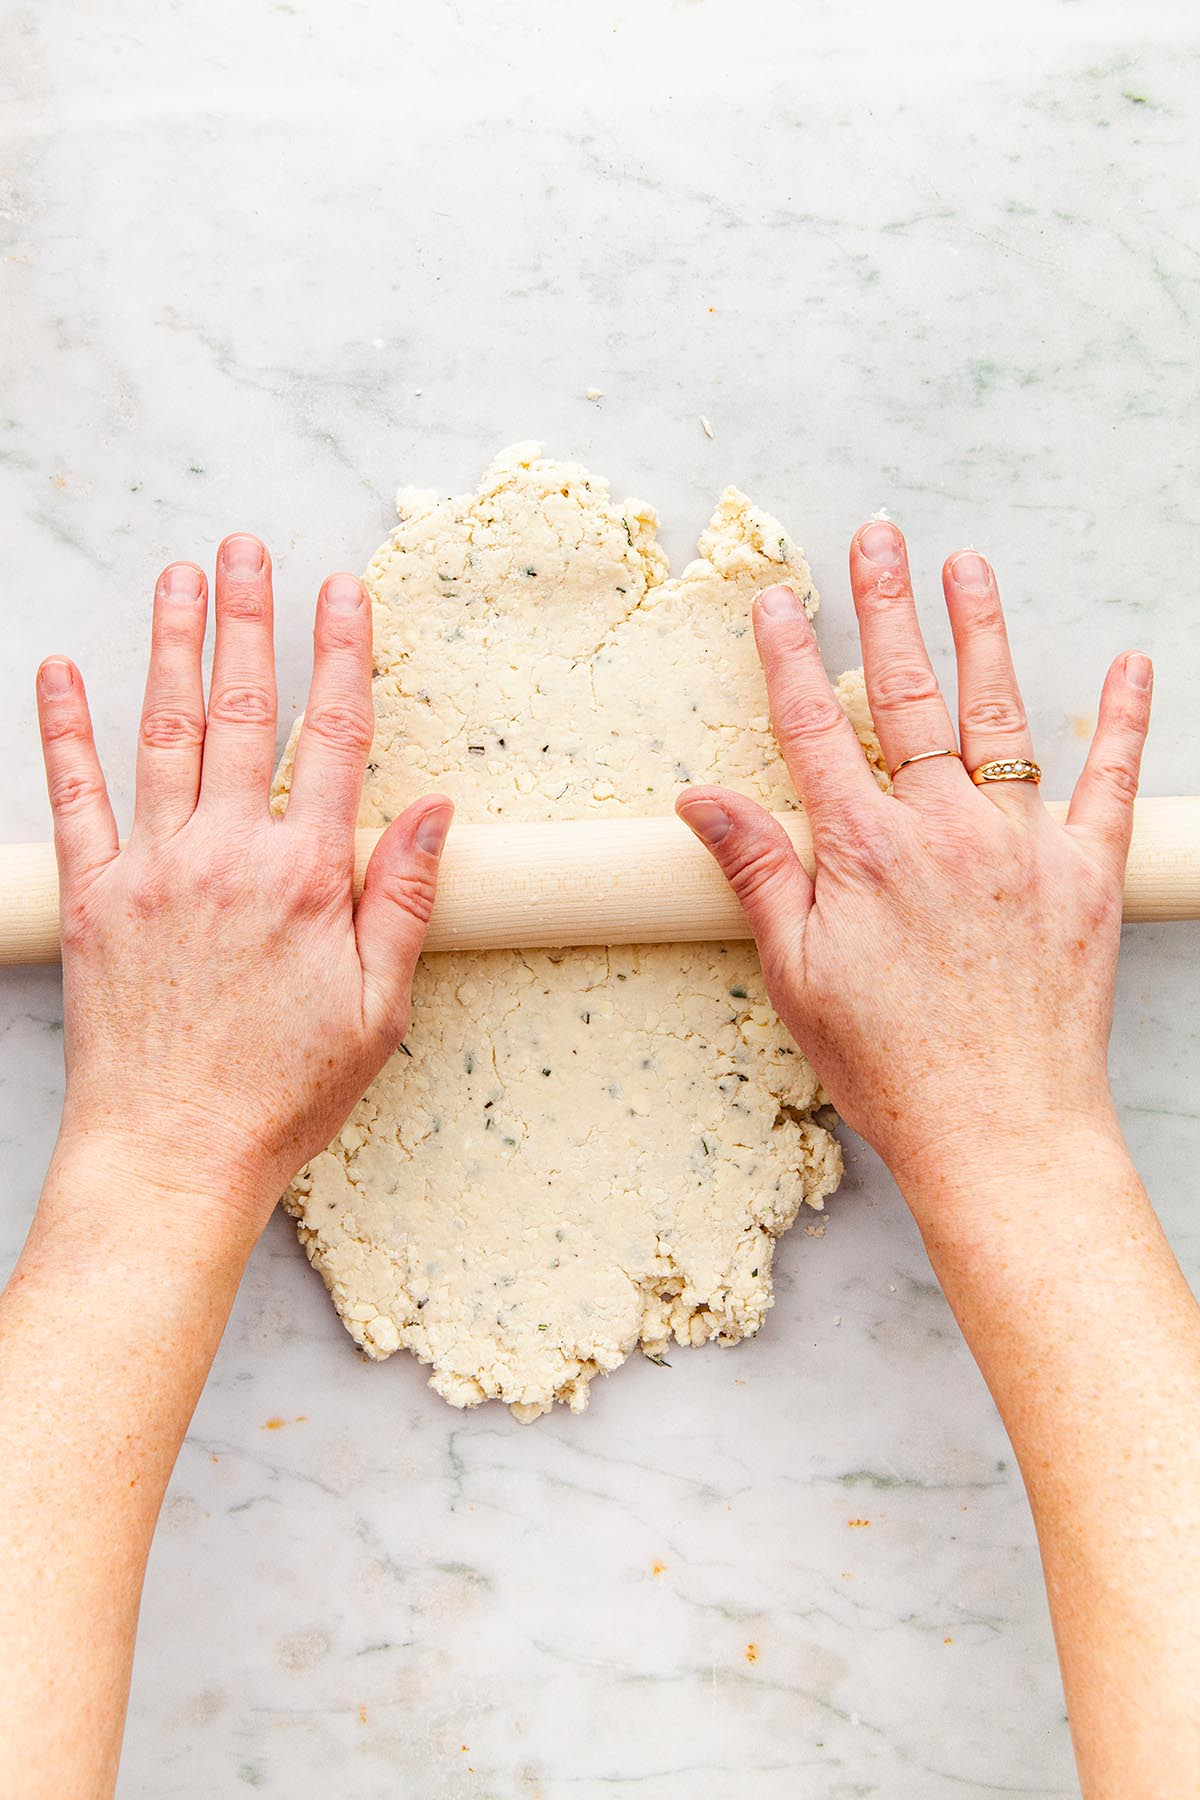 Hands rolling dough with a rolling pin.